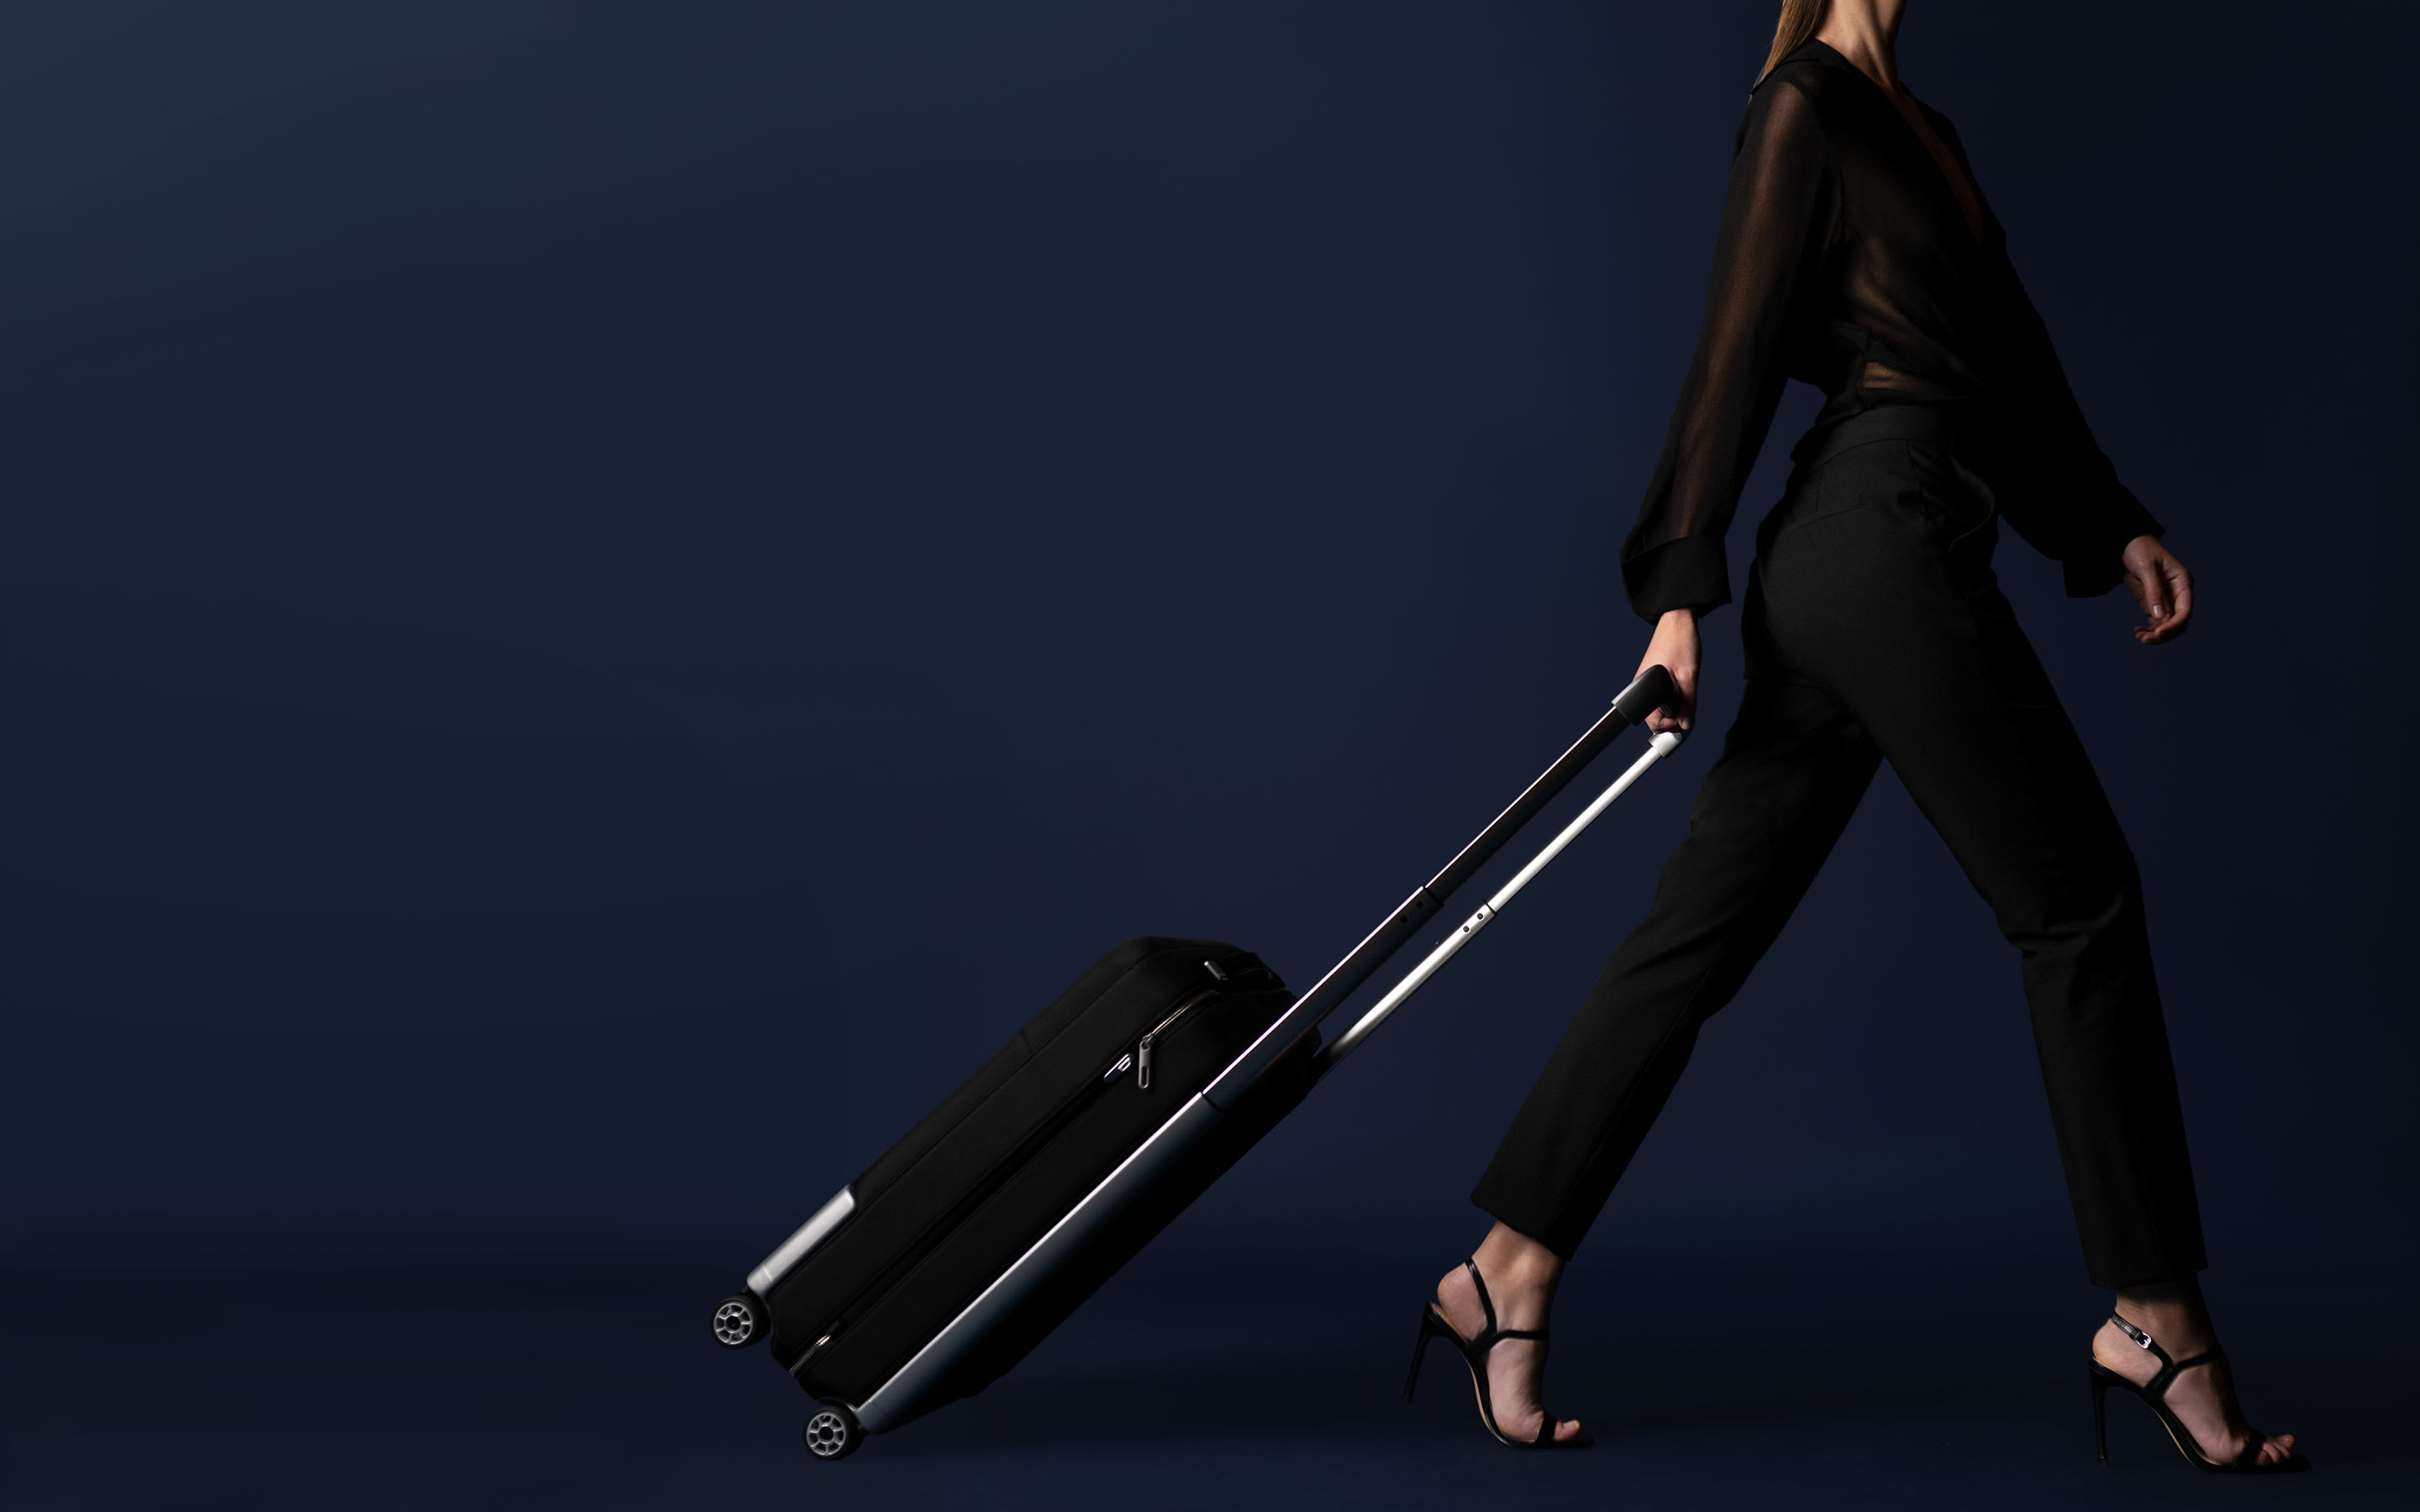 Rethink the Way Your Travel with VOCIER's 'Avant' Configurable Luggage System